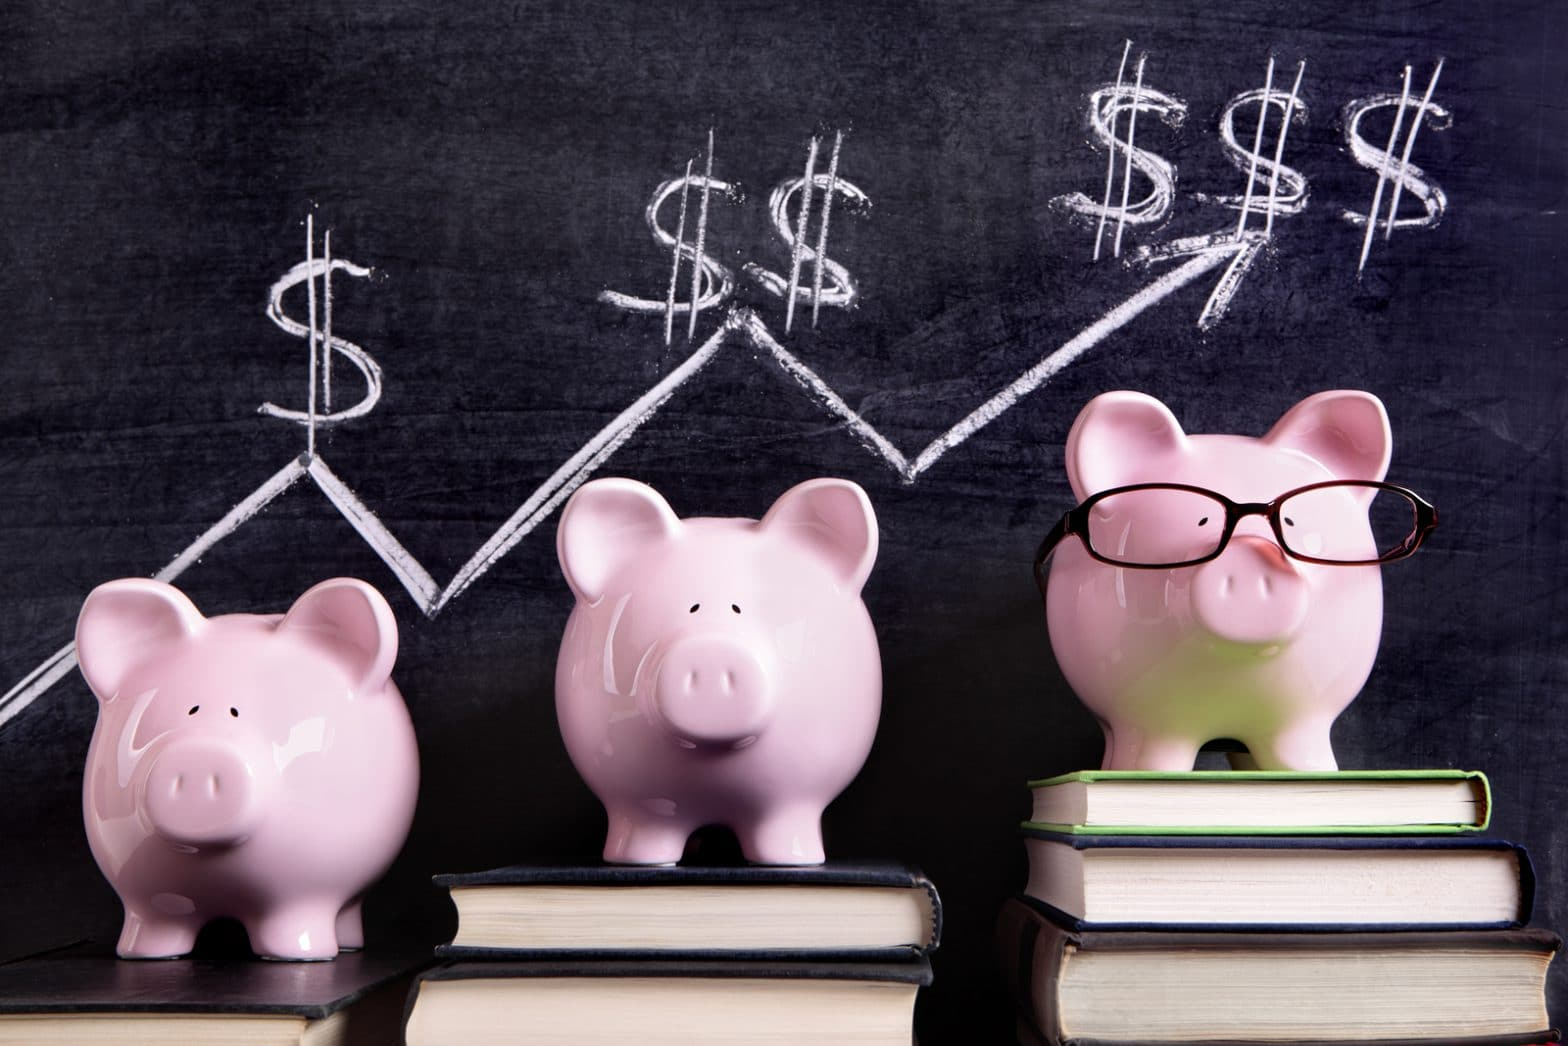 6 ways to get cheap textbooks